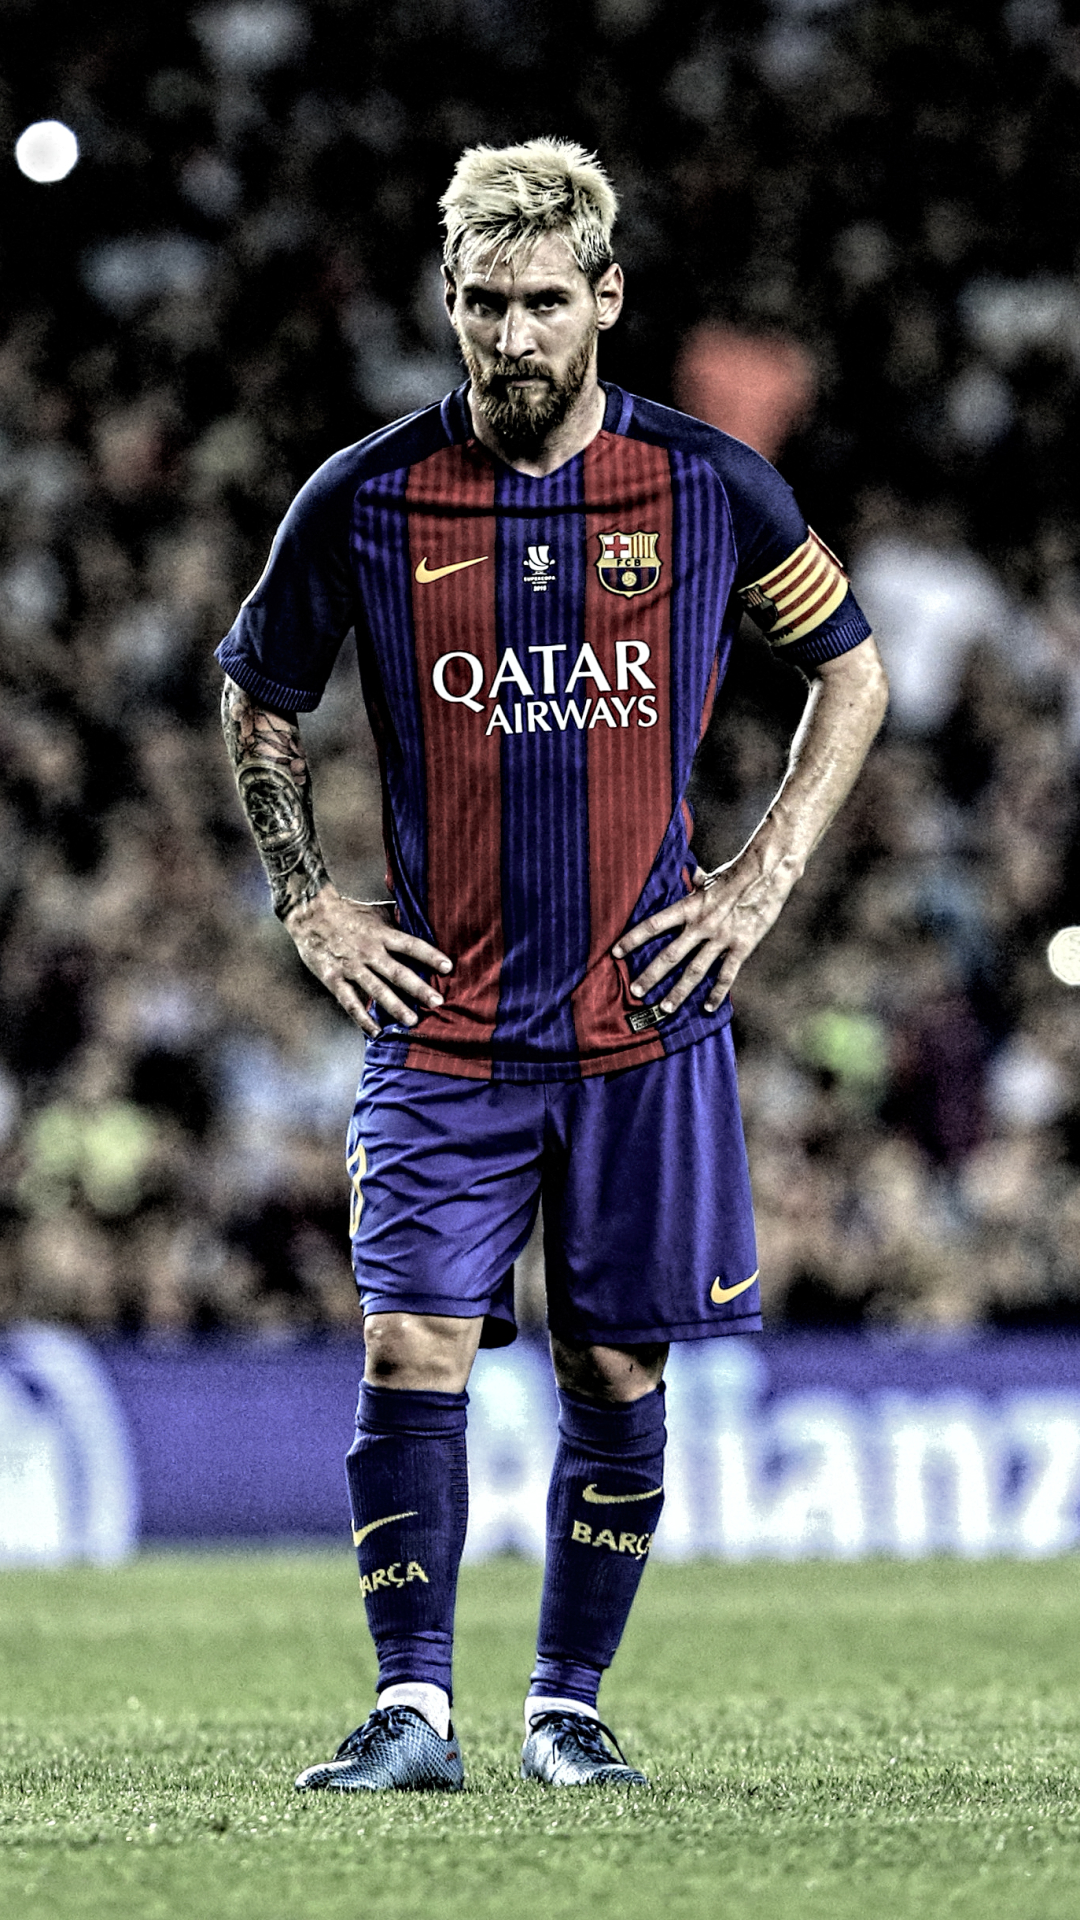 messi wallpaper iphone  20 Lionel Messi Apple/iPhone 7 Plus (1080x1920) Wallpapers - Mobile ...